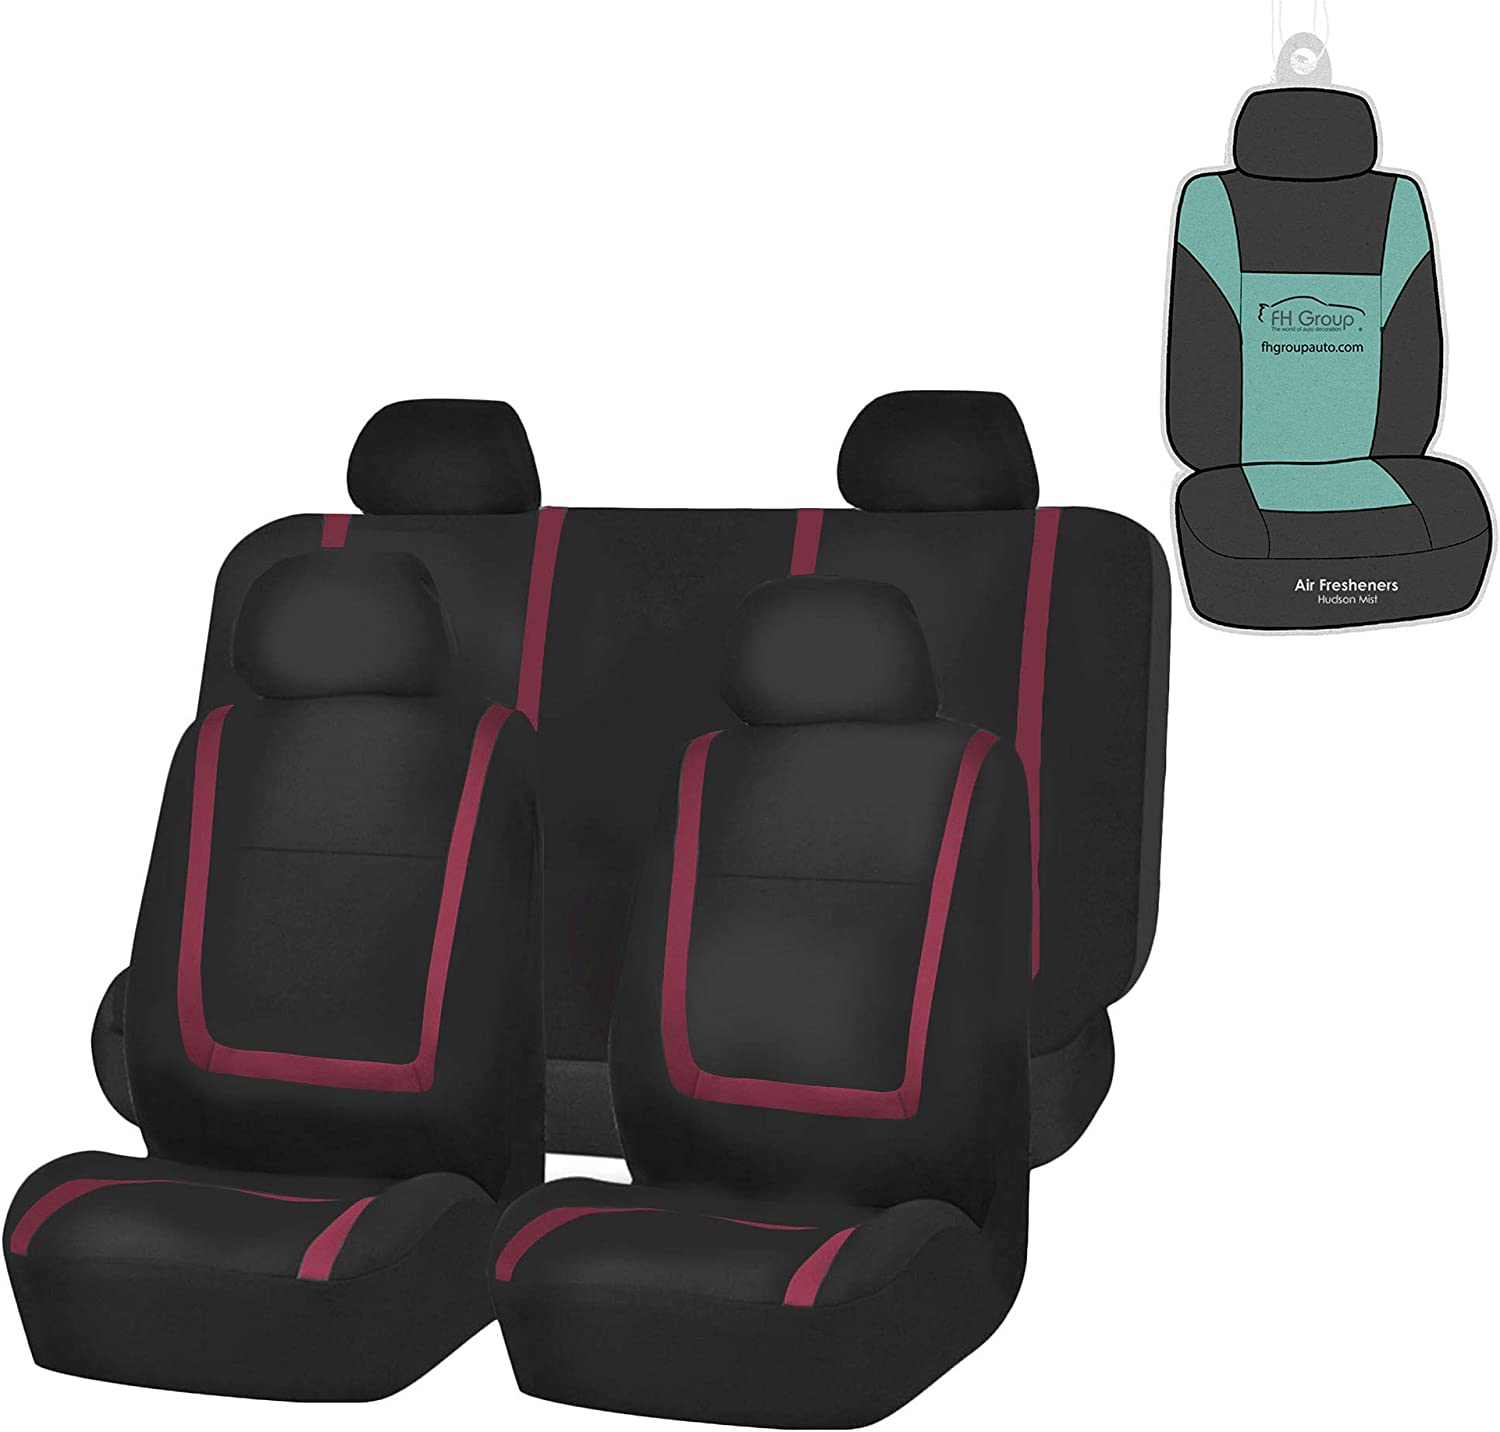 FH Group FB032114 Unique Flat Cloth Seat Covers (Burgundy) Full Set with Gift – Universal Fit for Cars Trucks & SUVs